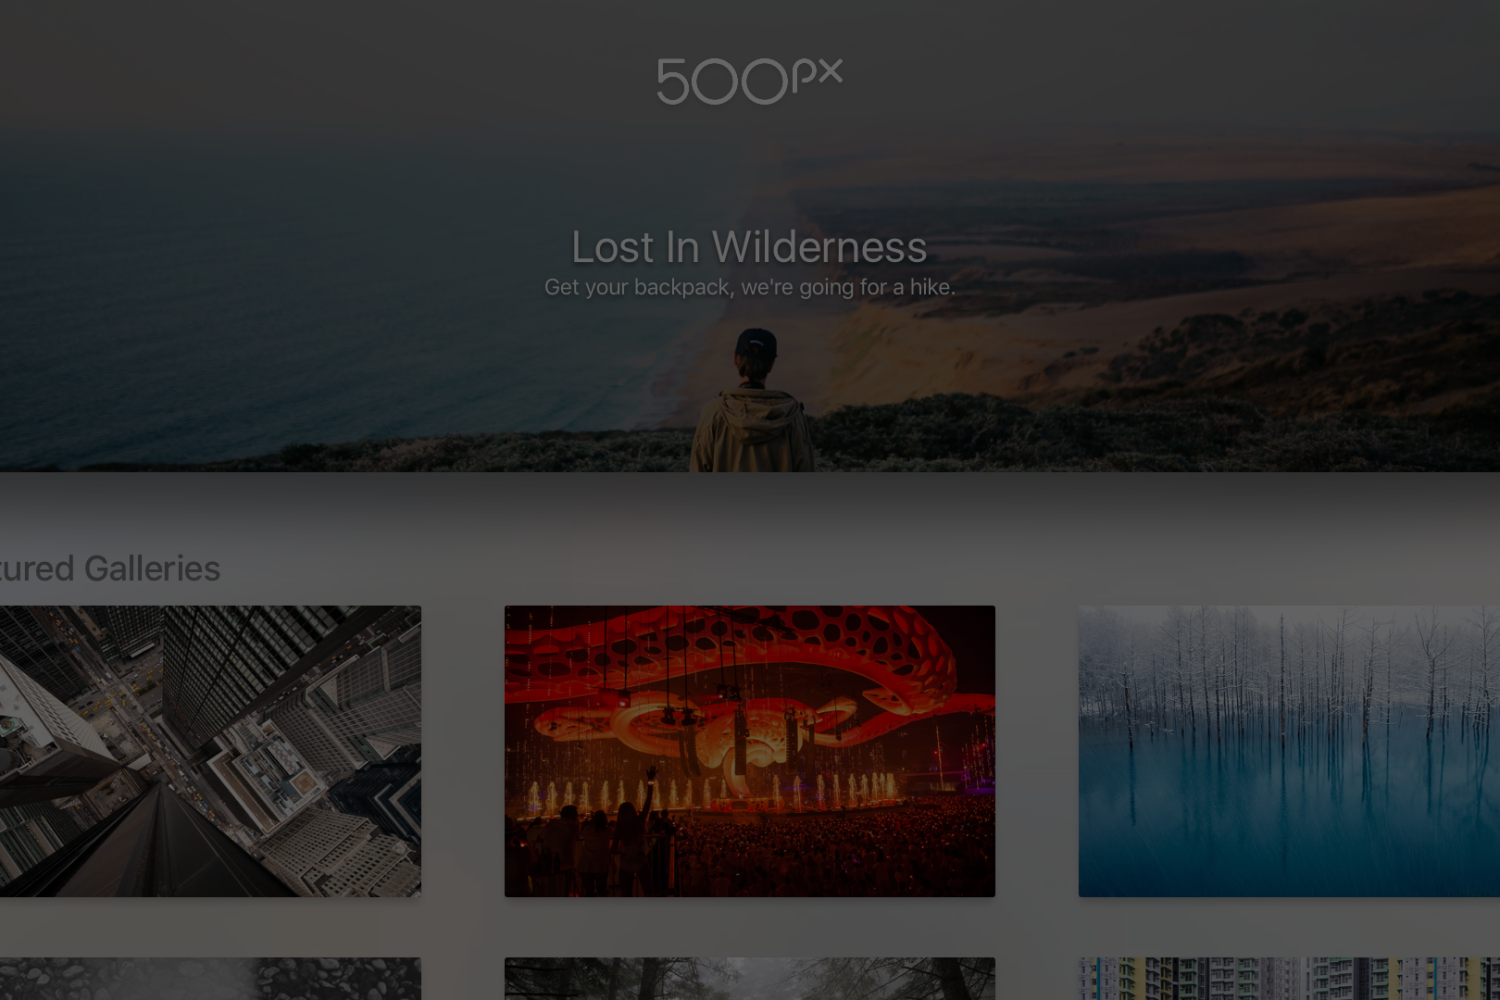 Announcing 500px for Apple TV!